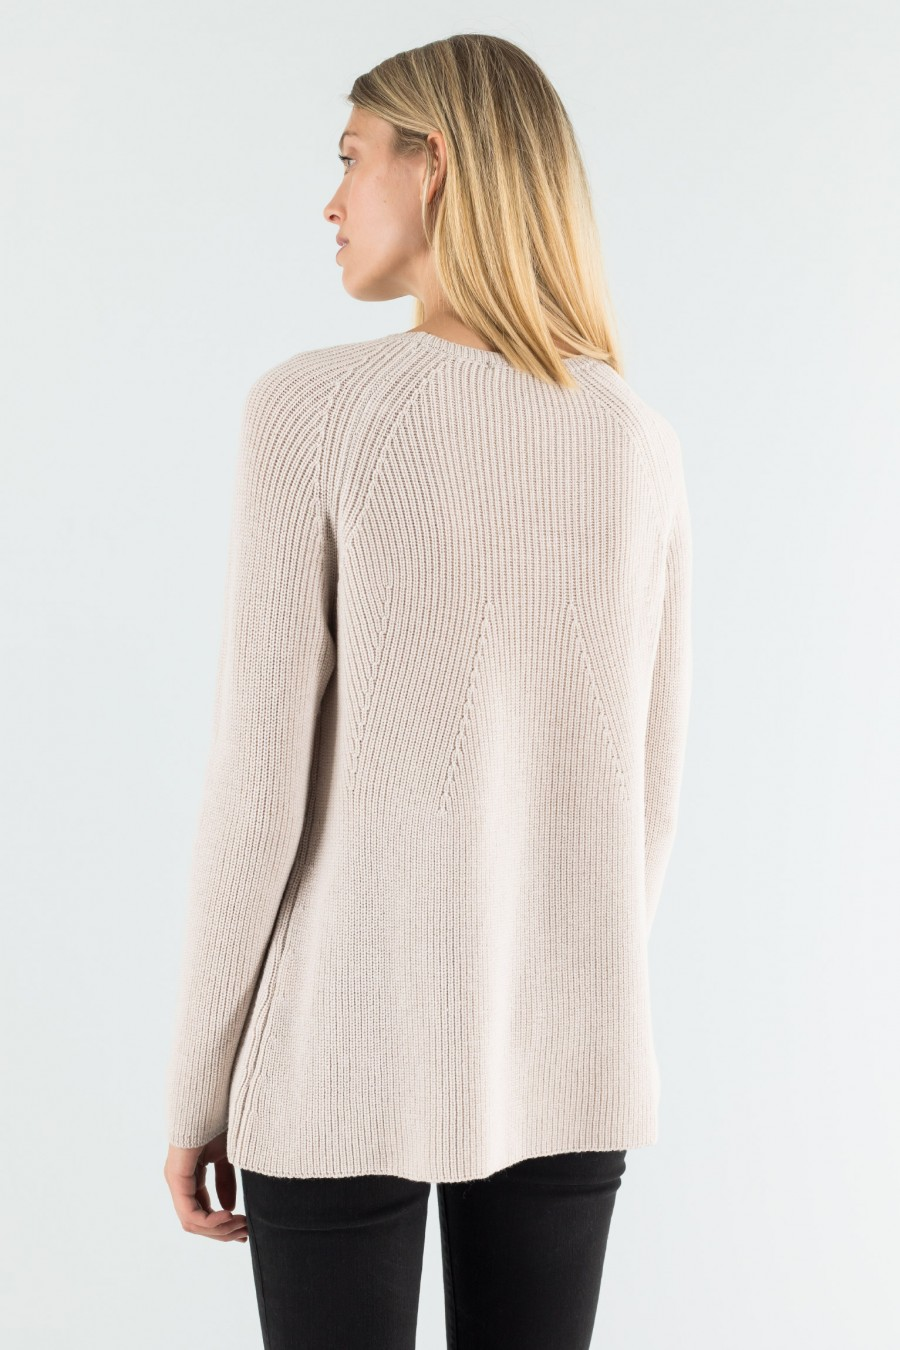 Cream pullover in English rib pattern